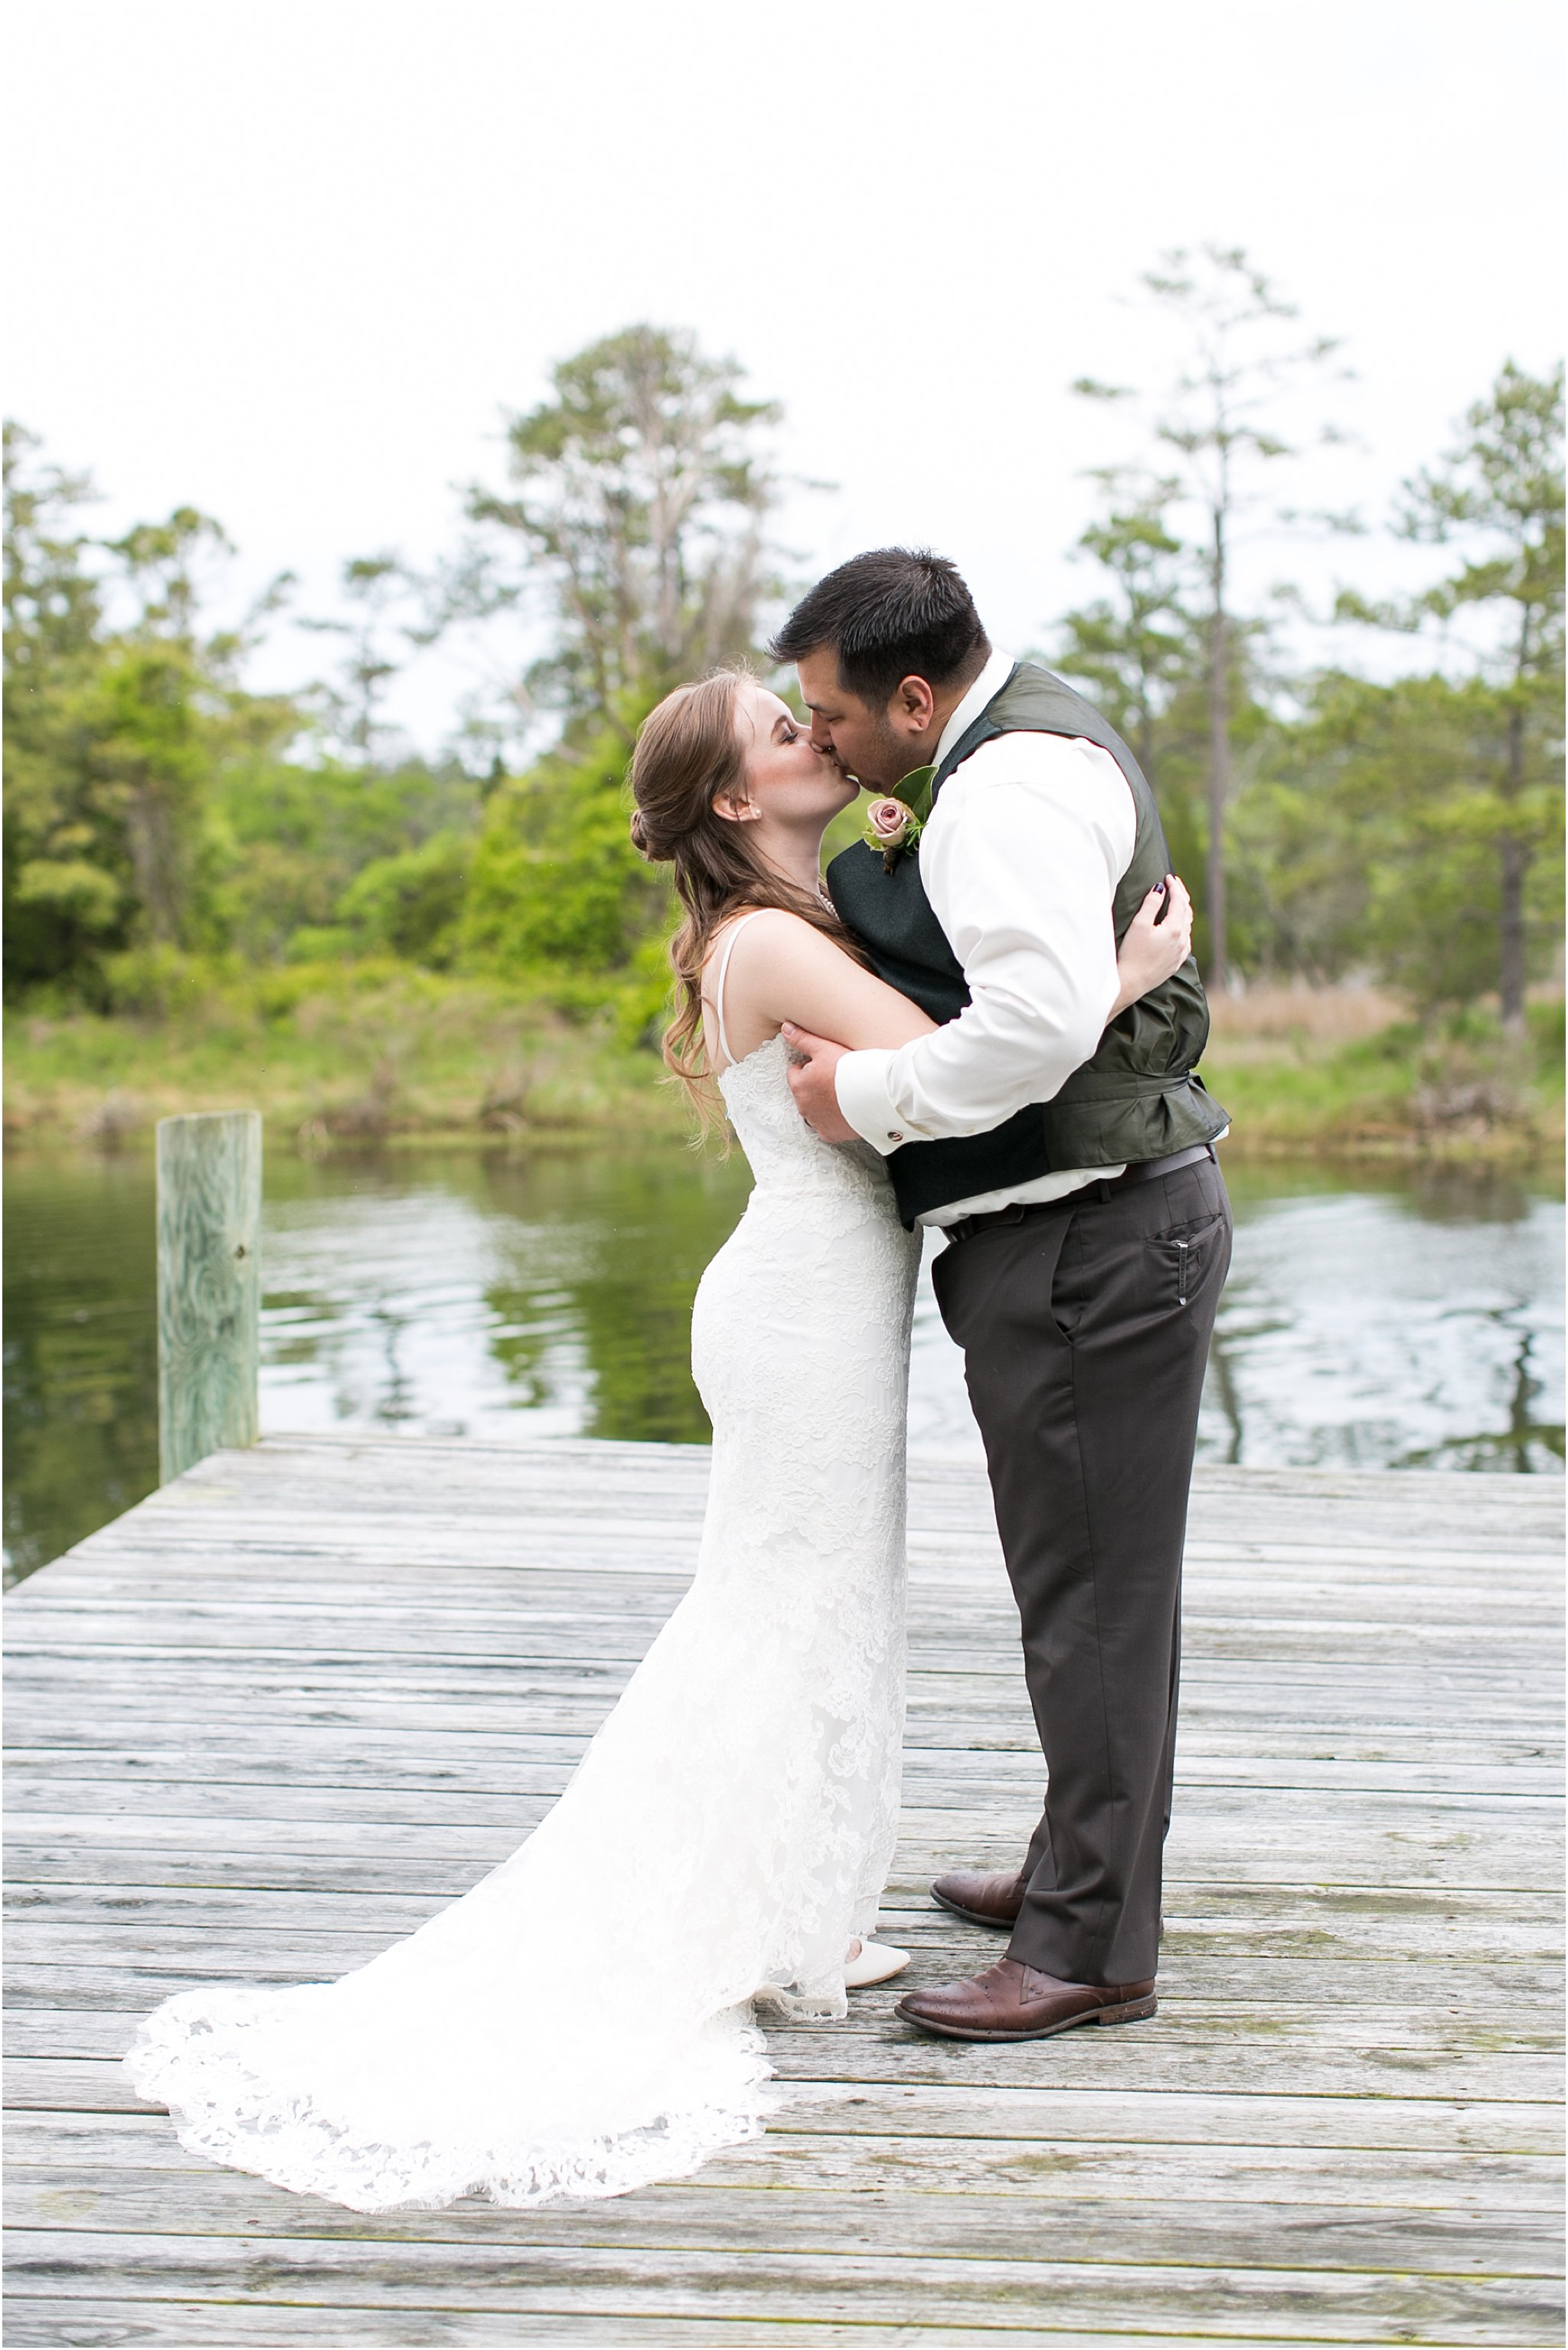 jessica_ryan_photography_virginia_virginiabeachwedding_bayislandvirginiabeach_backyardwedding_waterfrontwedding_intimatewedding_vintagewedding_1567